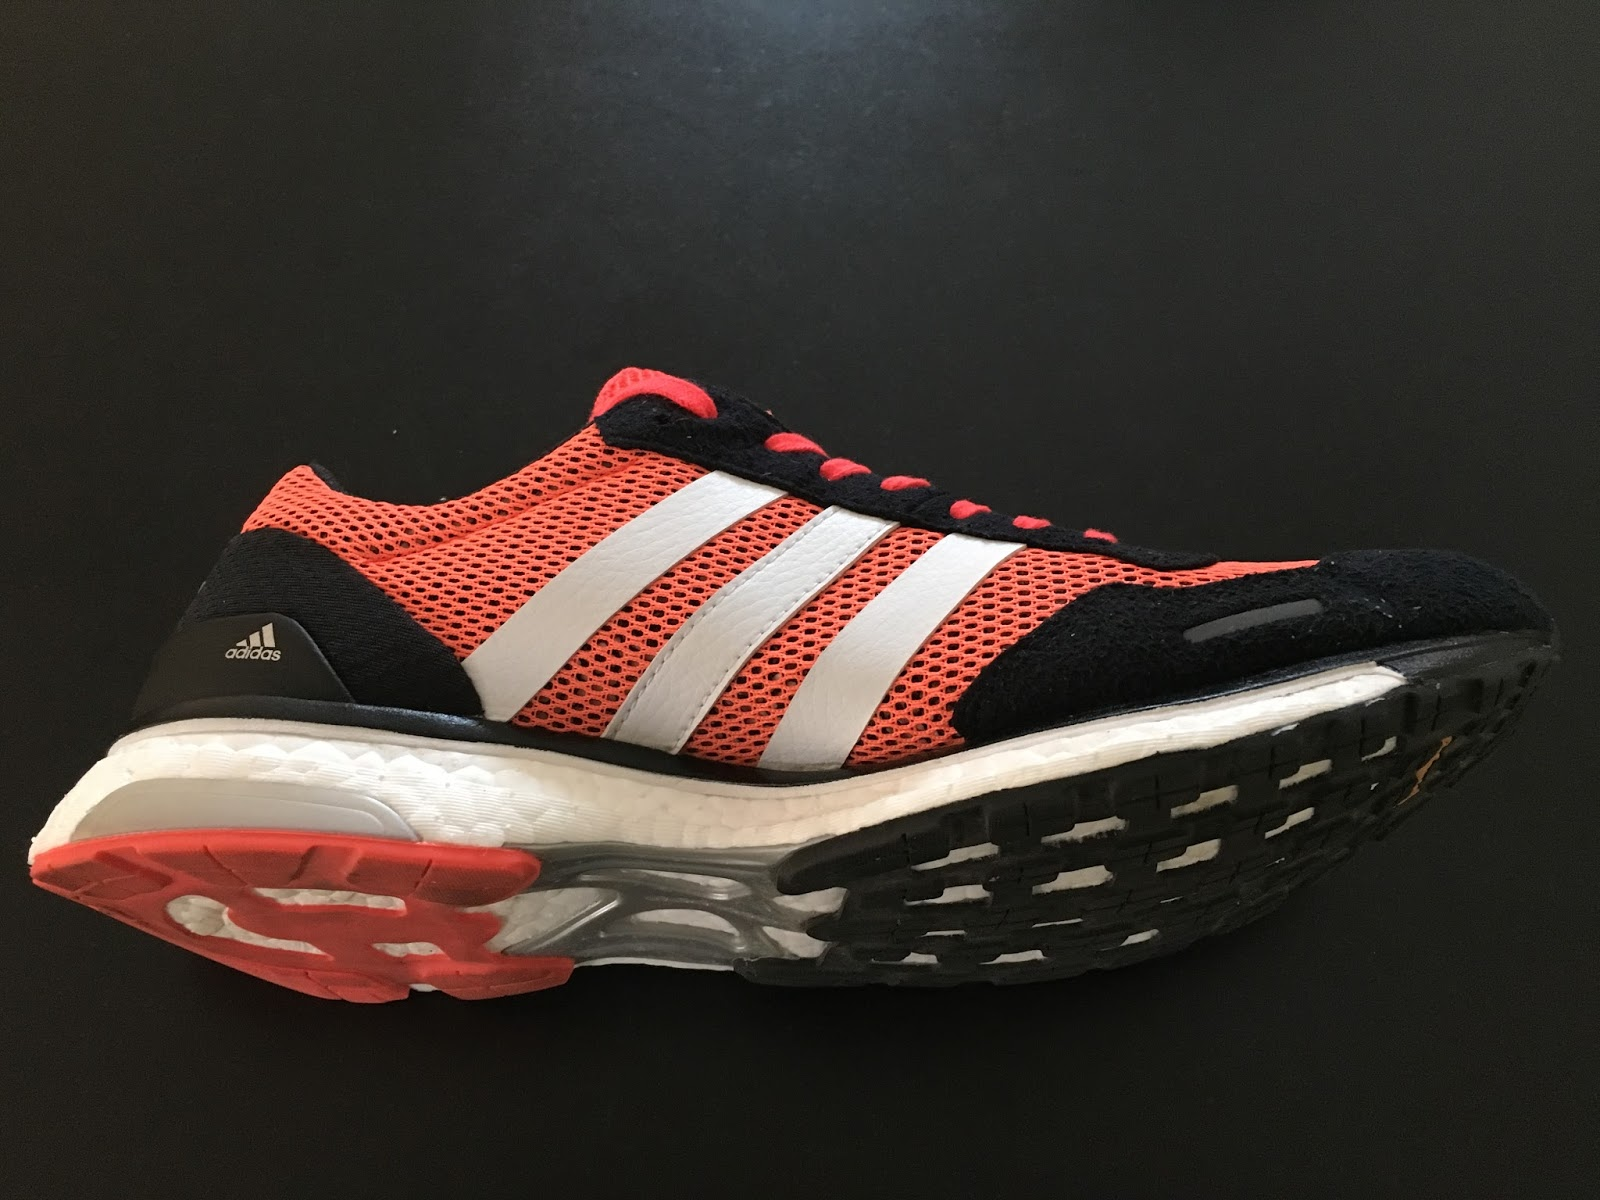 acfed0bbf2f04 Ride and Recomendations Don t be scared that this is the world record  setting marathon shoe! Unlike many racing